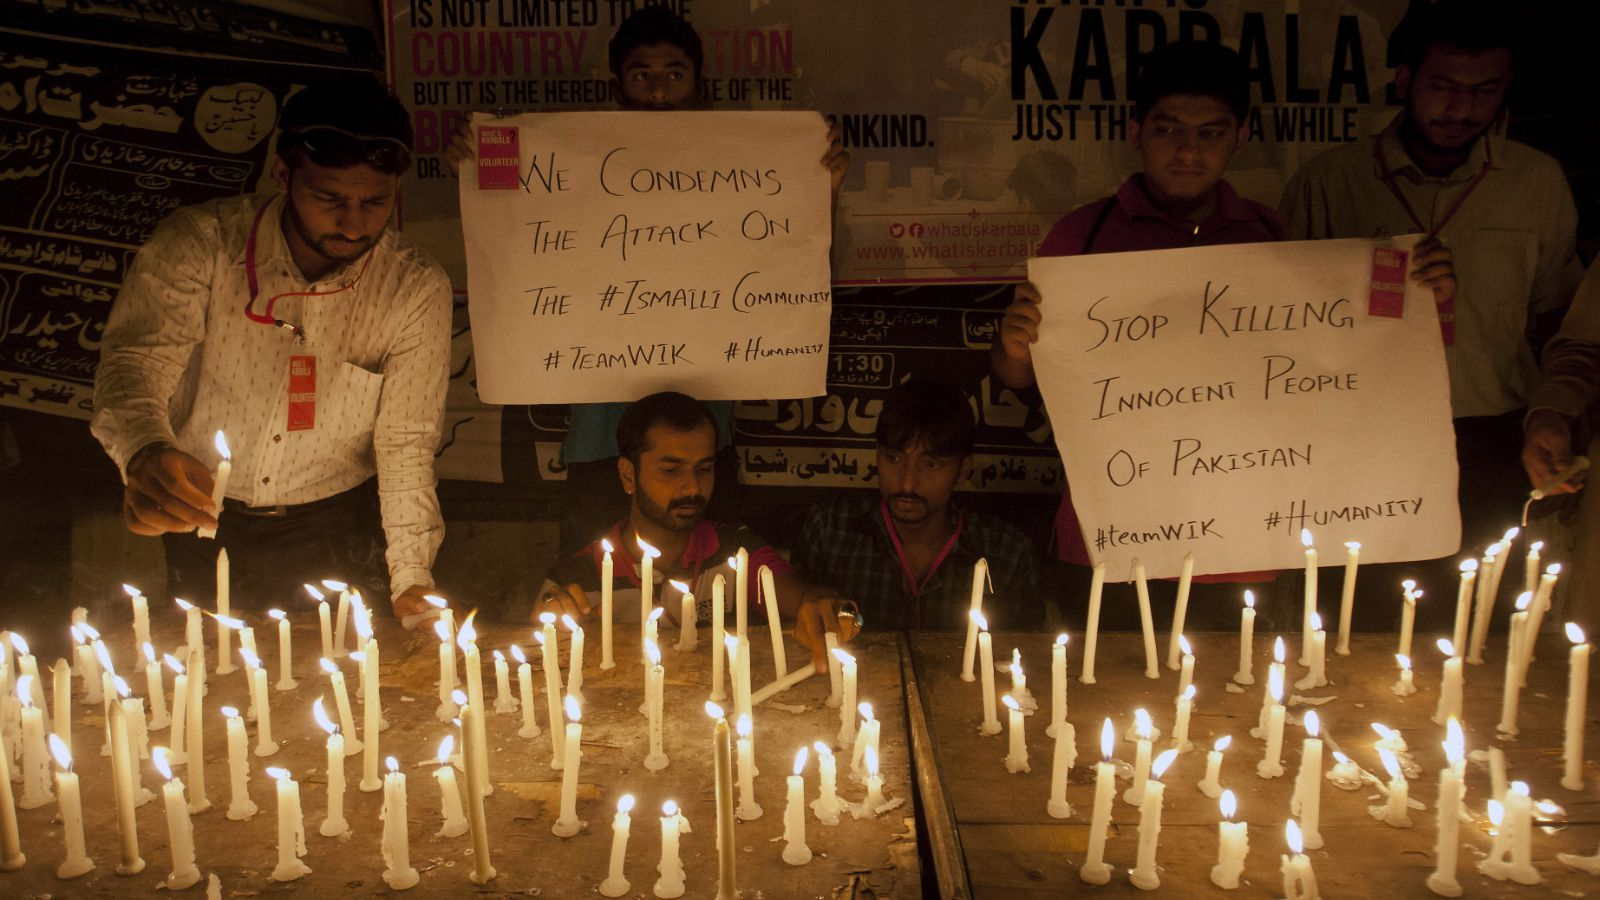 People light candles to protest and show solidarity with the victims of a bus attack in Karachi, Pakistan, Wednesday, May 13, 2015. Gunmen stormed a bus in southern Pakistan and ordered its Shiite Muslim passengers to bow their heads before shooting them, killing dozens of people in the latest attack targeting religious minority, officials said.